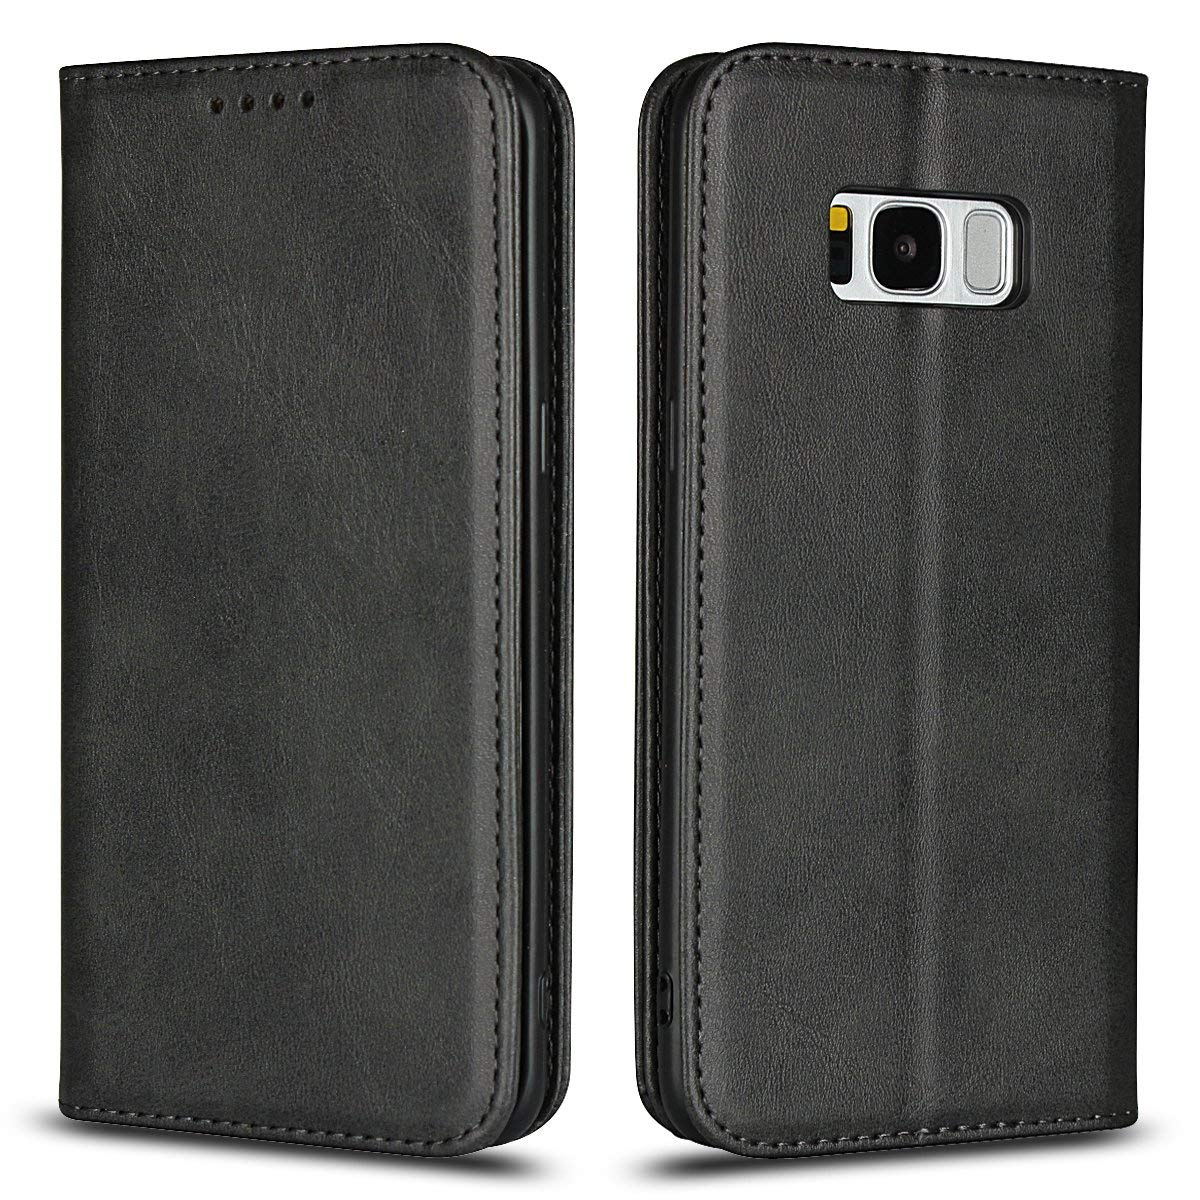 Scheam for Samsung Galaxy S Lite Luxury Edition Samsung Galaxy S8 Case, [Extra Card Slot] [Wallet Case] PU Leather TPU Casing Replacement [Drop Protection] Case Compatible with Samsung Galaxy S Lite